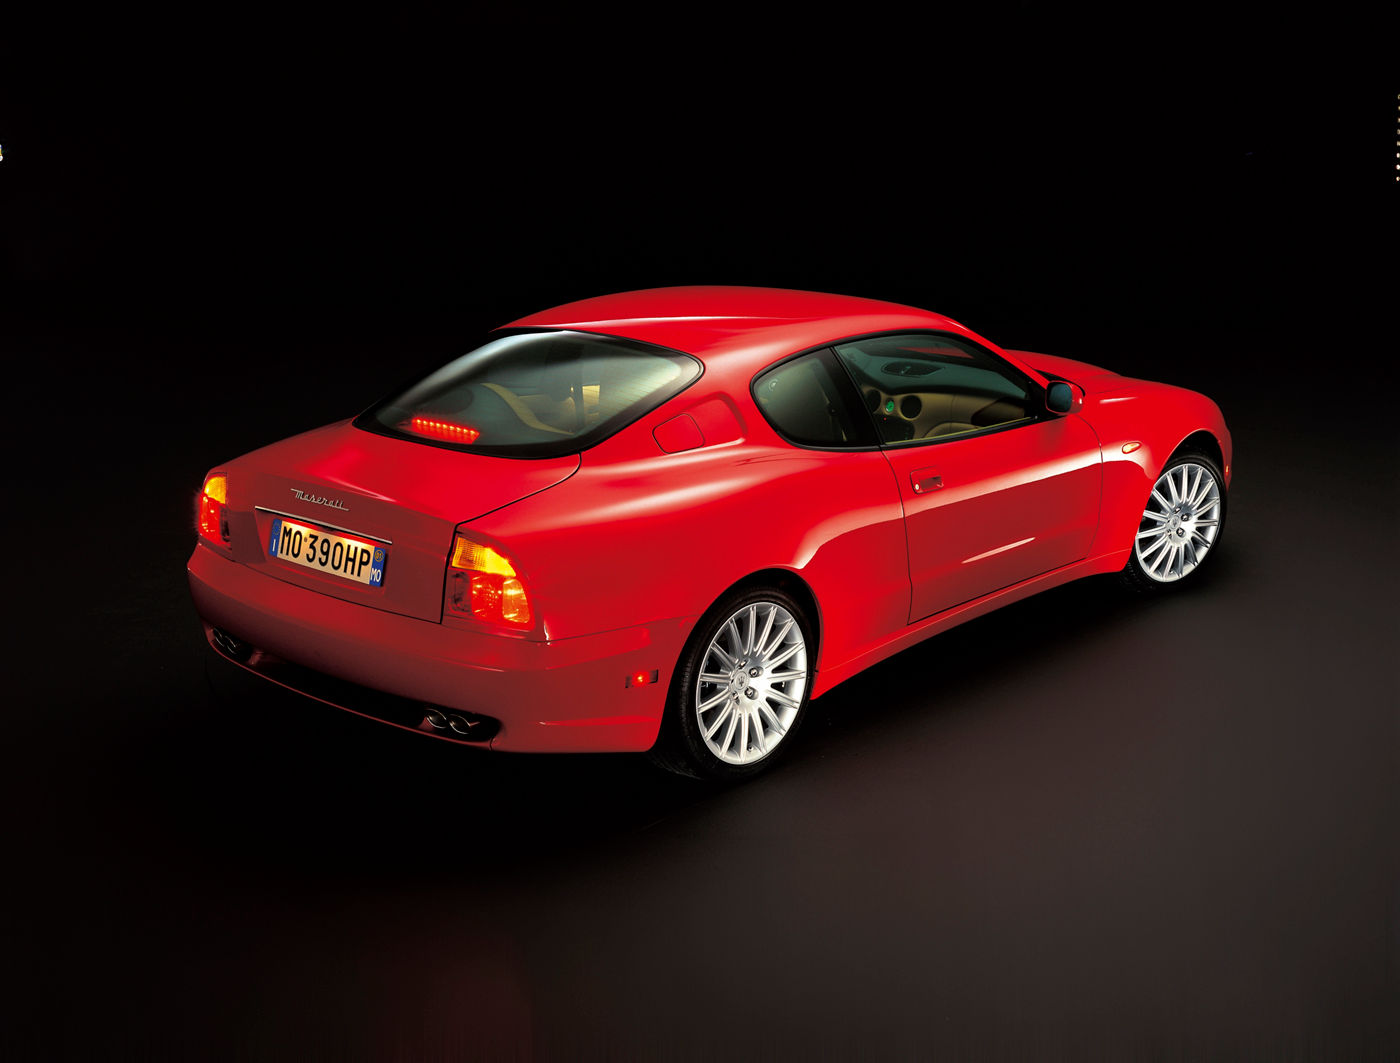 2002 Maserati GranTurismo Coupe - rear view of the classic car model in red